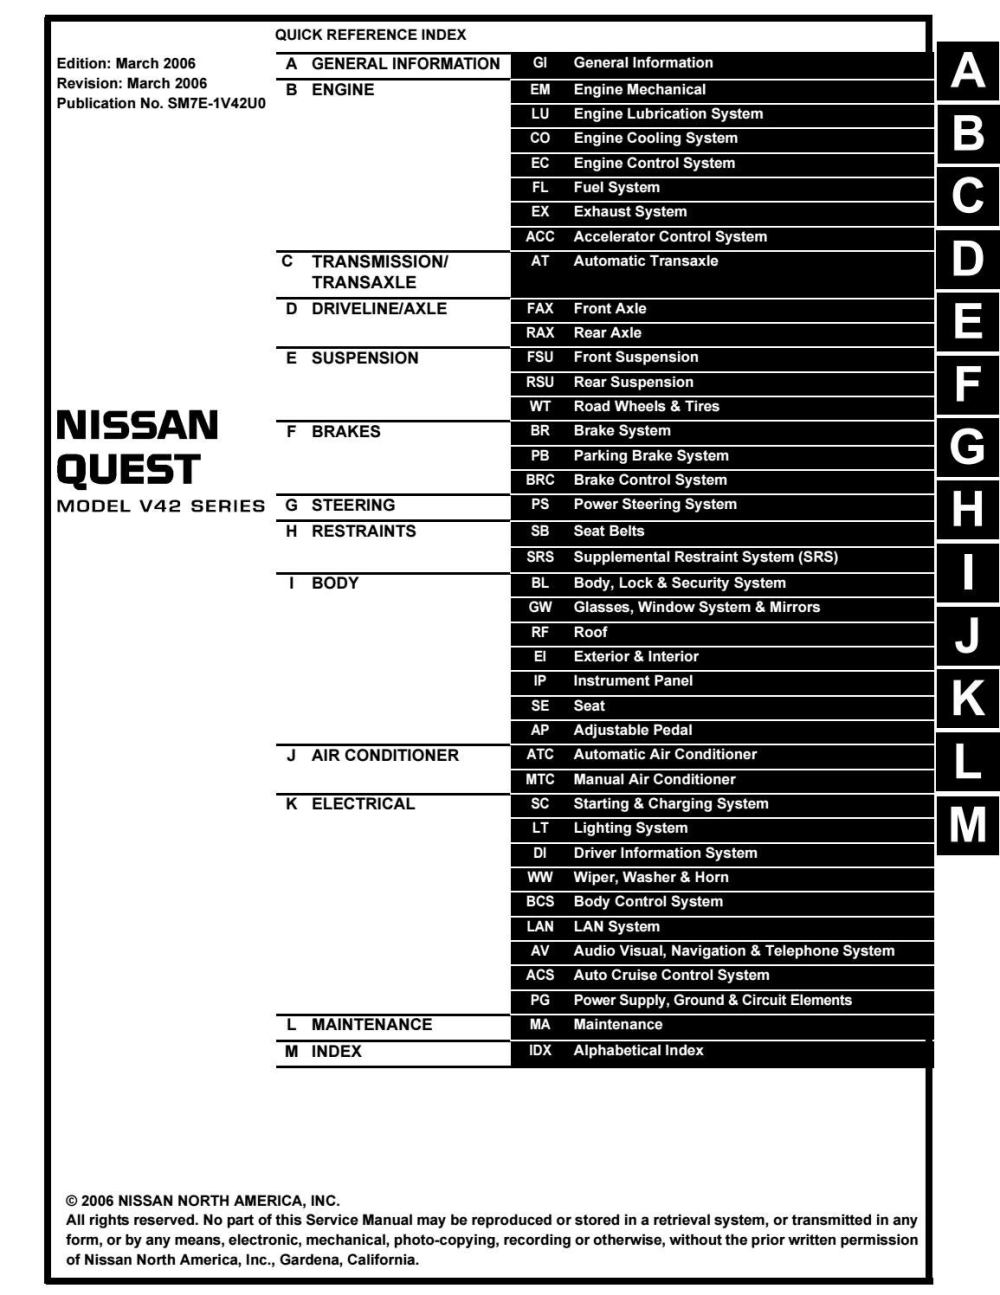 medium resolution of 2007 nissan quest service repair manual